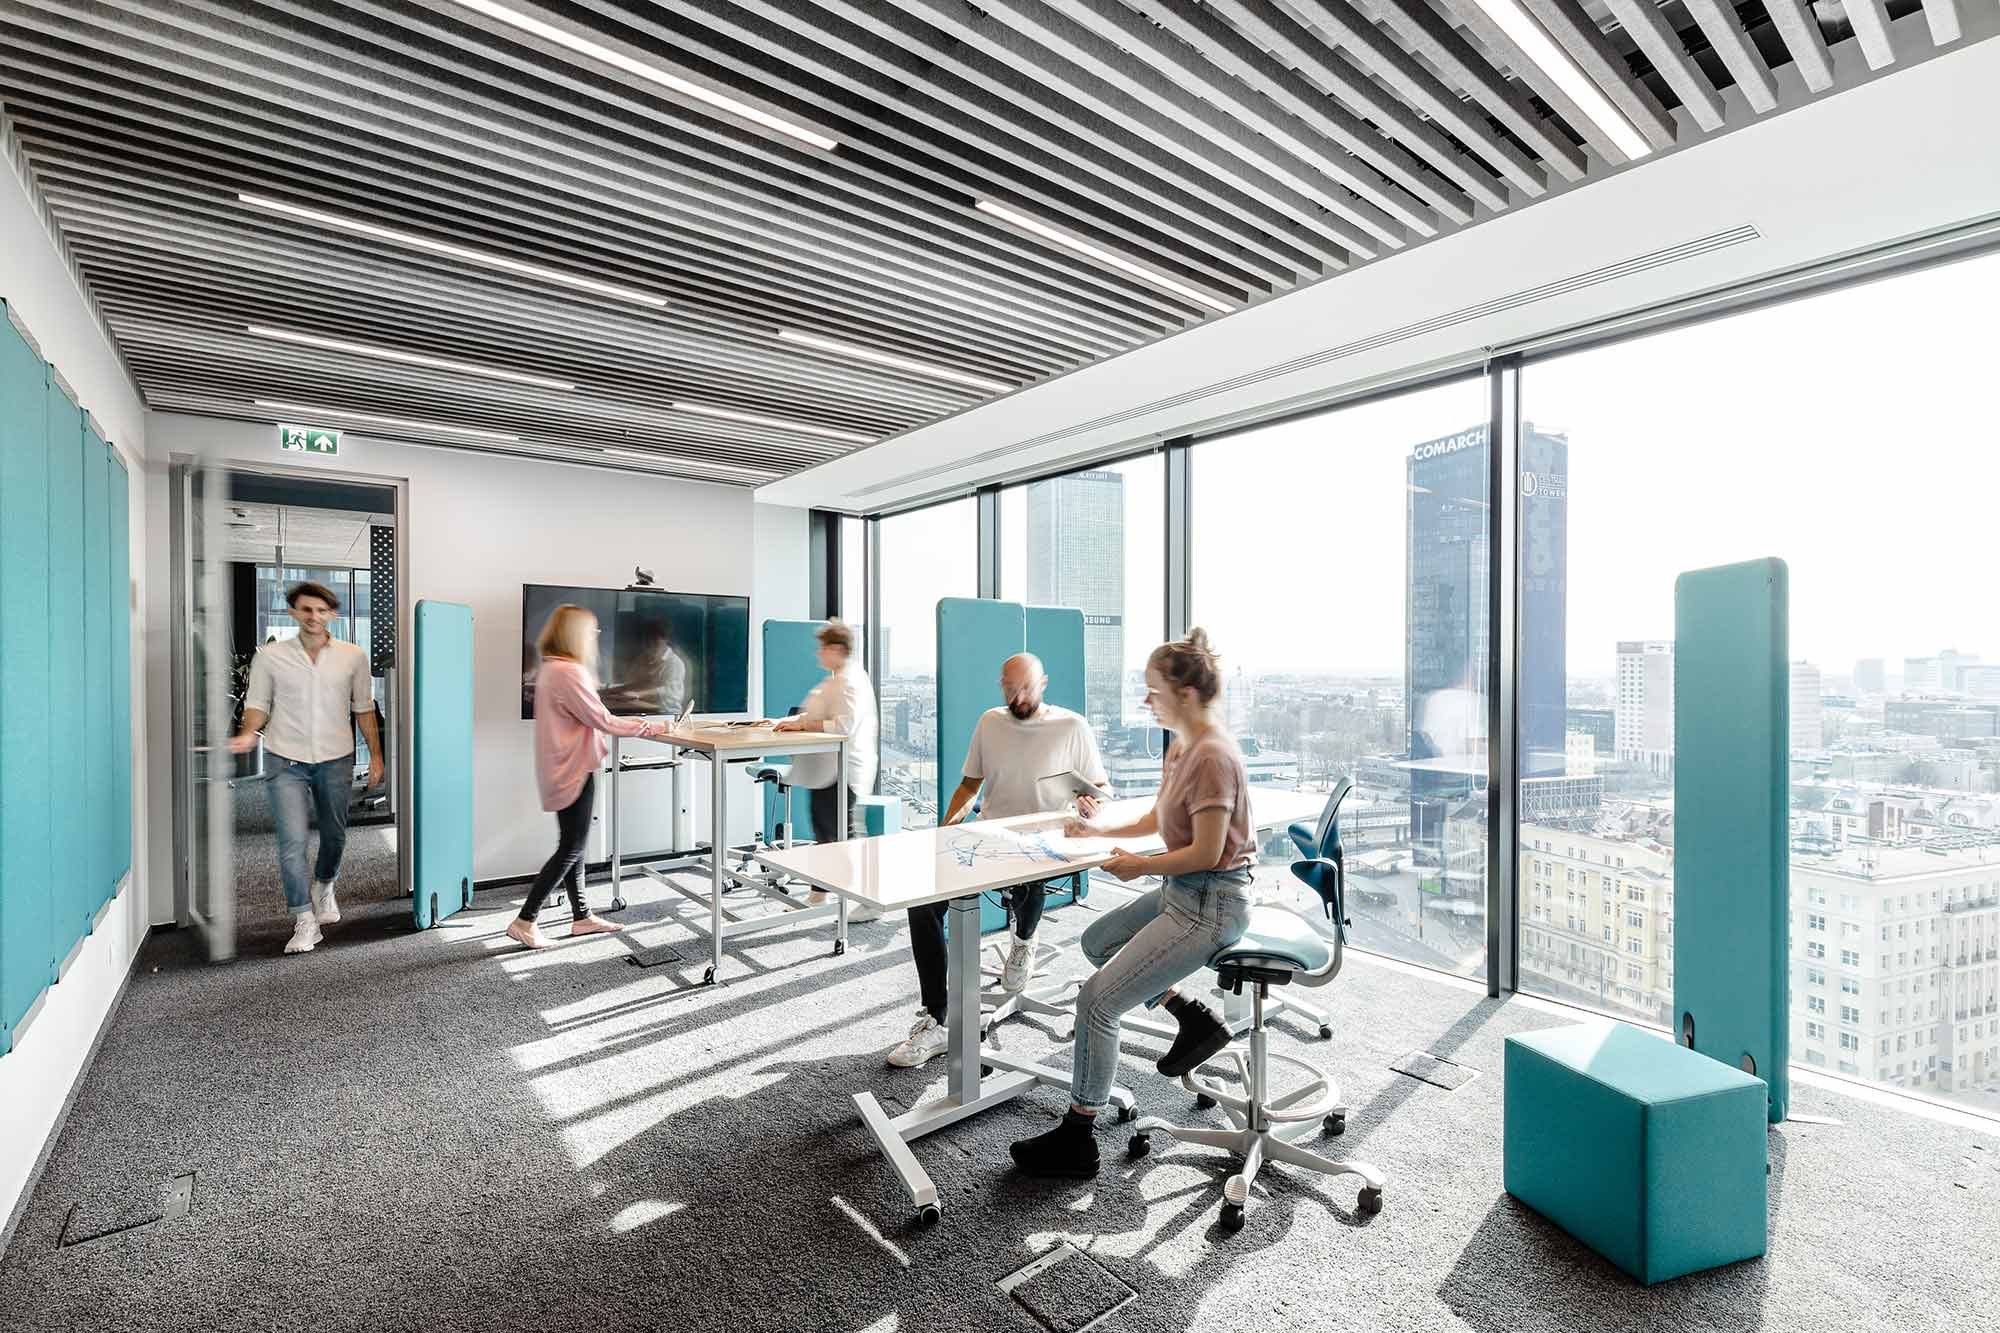 interior design project for Orsted renewable energy firm featuring flokk chairs